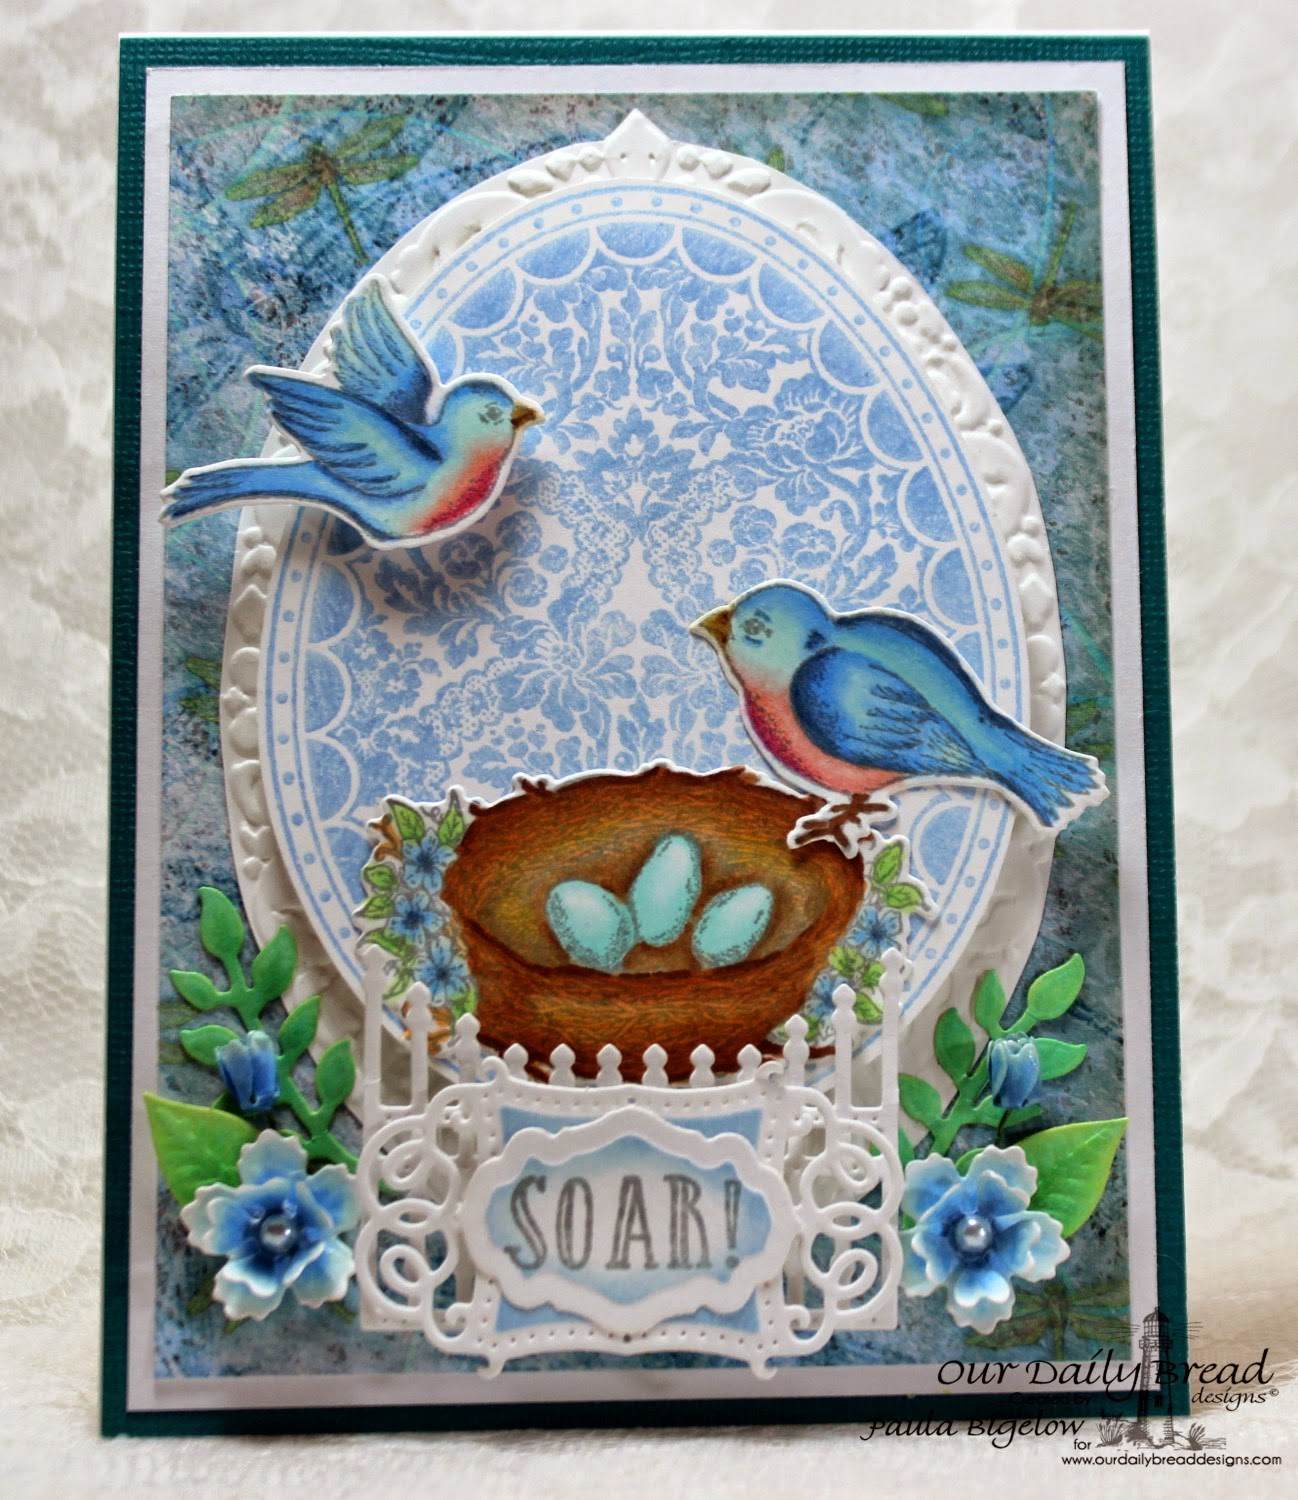 Our Daily Bread Designs, Spread Your Wings, Floral Egg, Birds and Nest Die, Vintage Flourish Pattern Die, Gilded Gate Die, Antique Labels & Border Die, Blooming Garden Collection Paper, Designed by Paula Bigelow